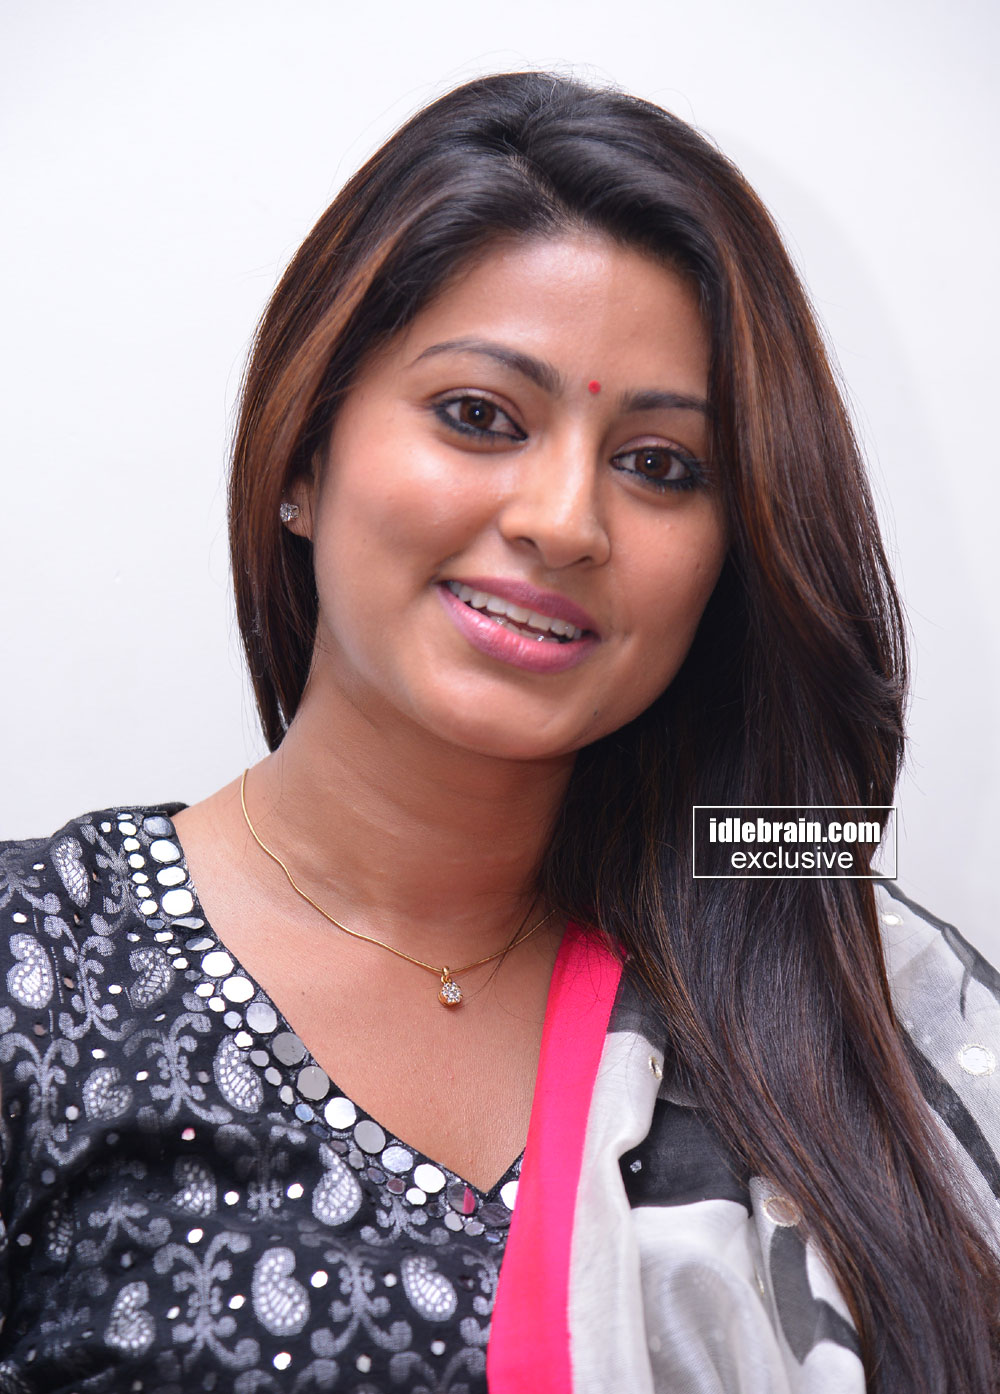 Sneha homely pictures